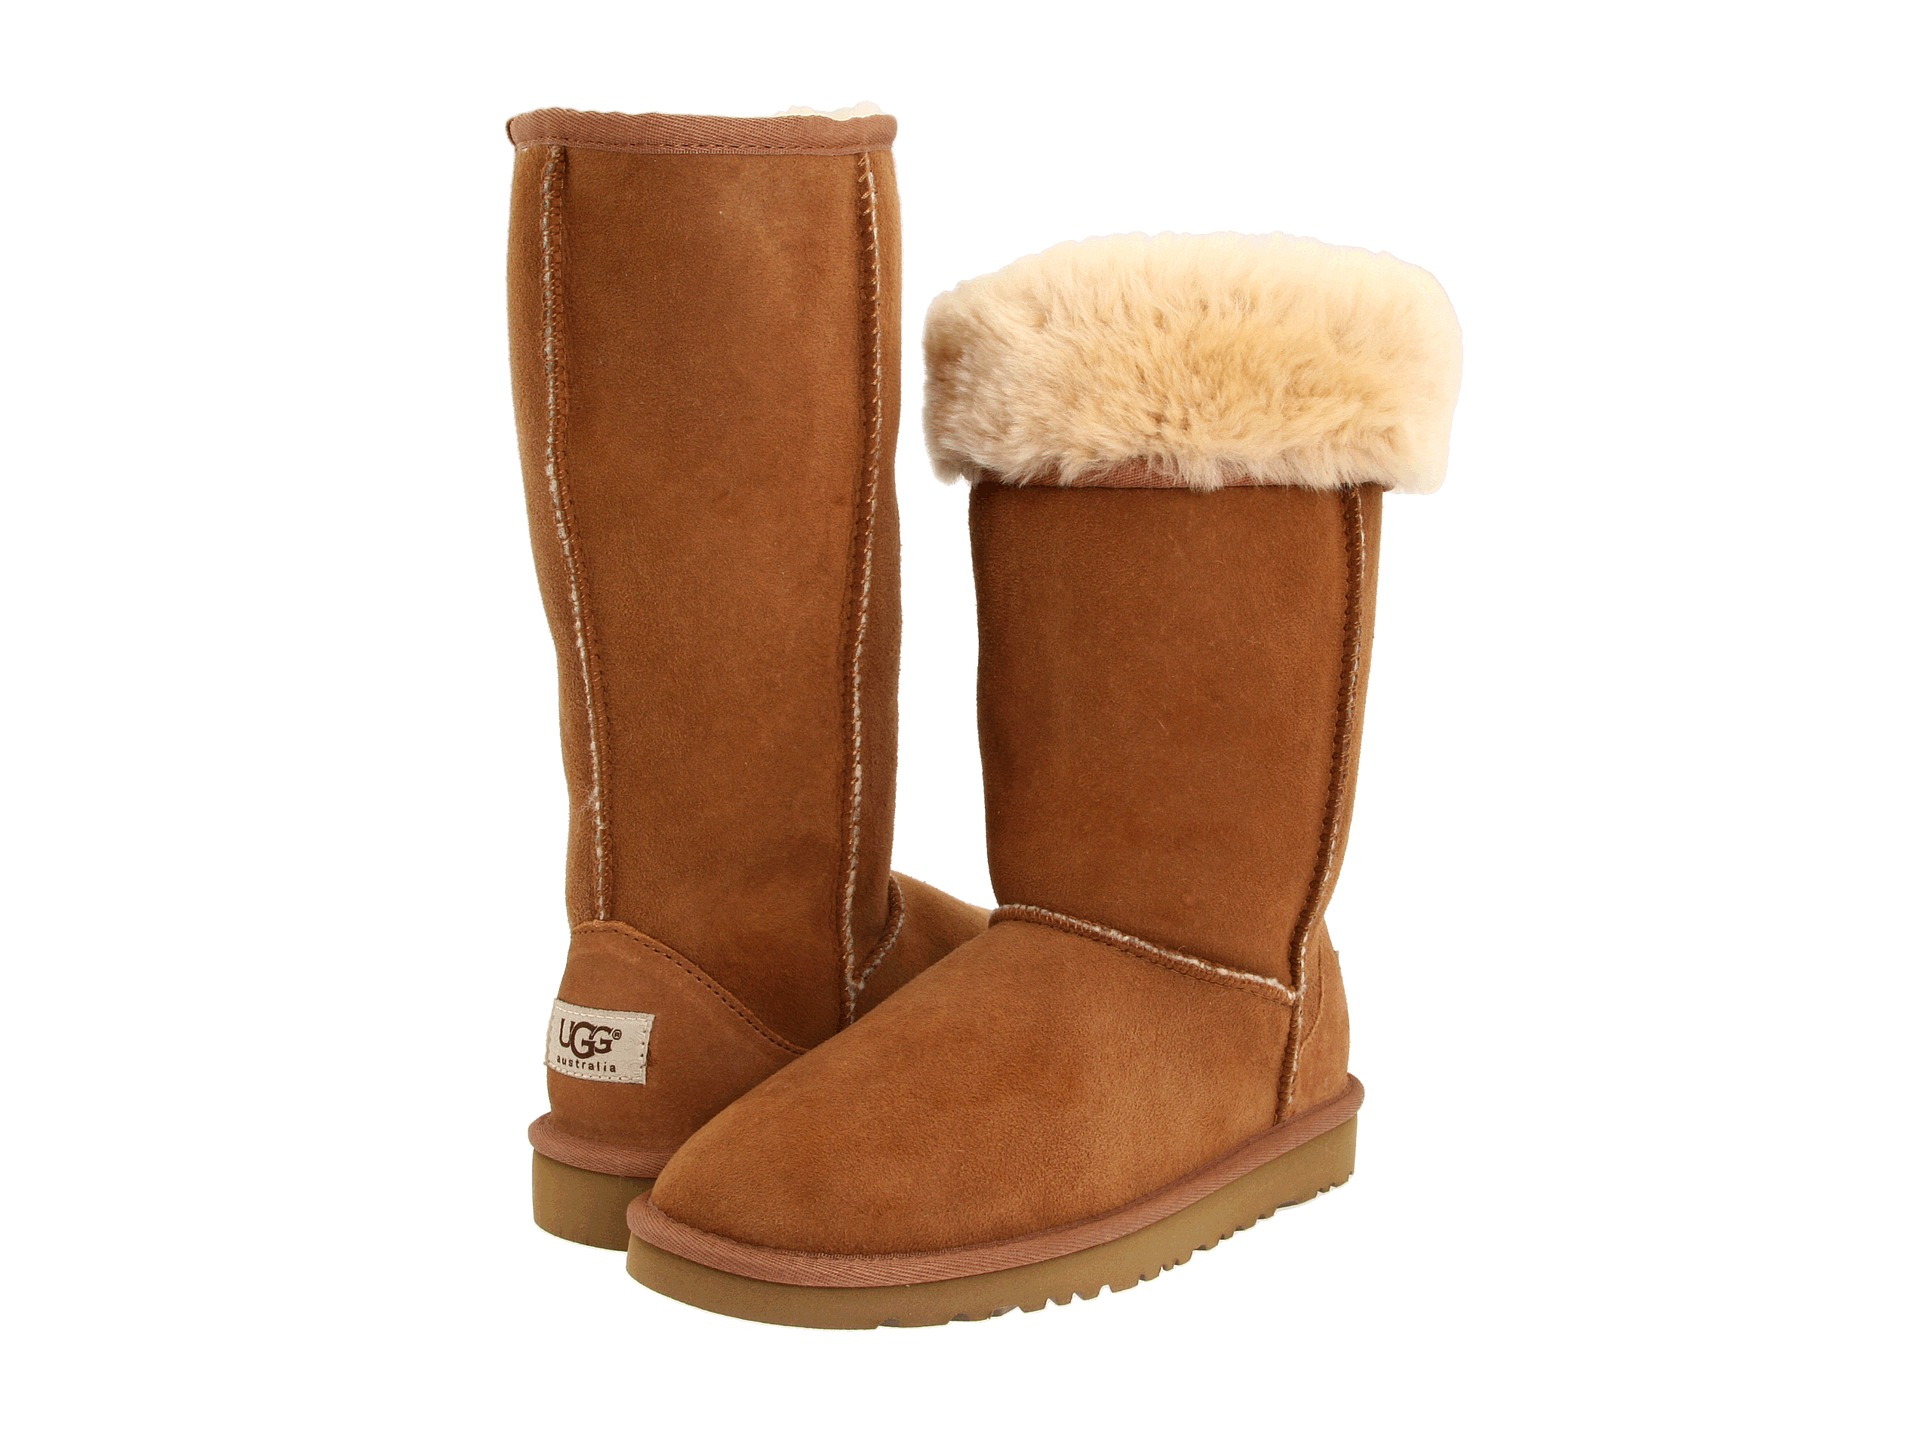 Kids' Uggs. Showing 48 of results that match your query. Search Product Result. Product - UGG Unisex Cozy Slide Slipper, Chestnut, 1 M US Big Kid. Product Image. Product - Big Kids Ugg Bailey Bow Black Boot KK-BLK. Product Image. Price $ 99 - $ Product Title. Big Kids Ugg Bailey Bow Black Boot KK-BLK.